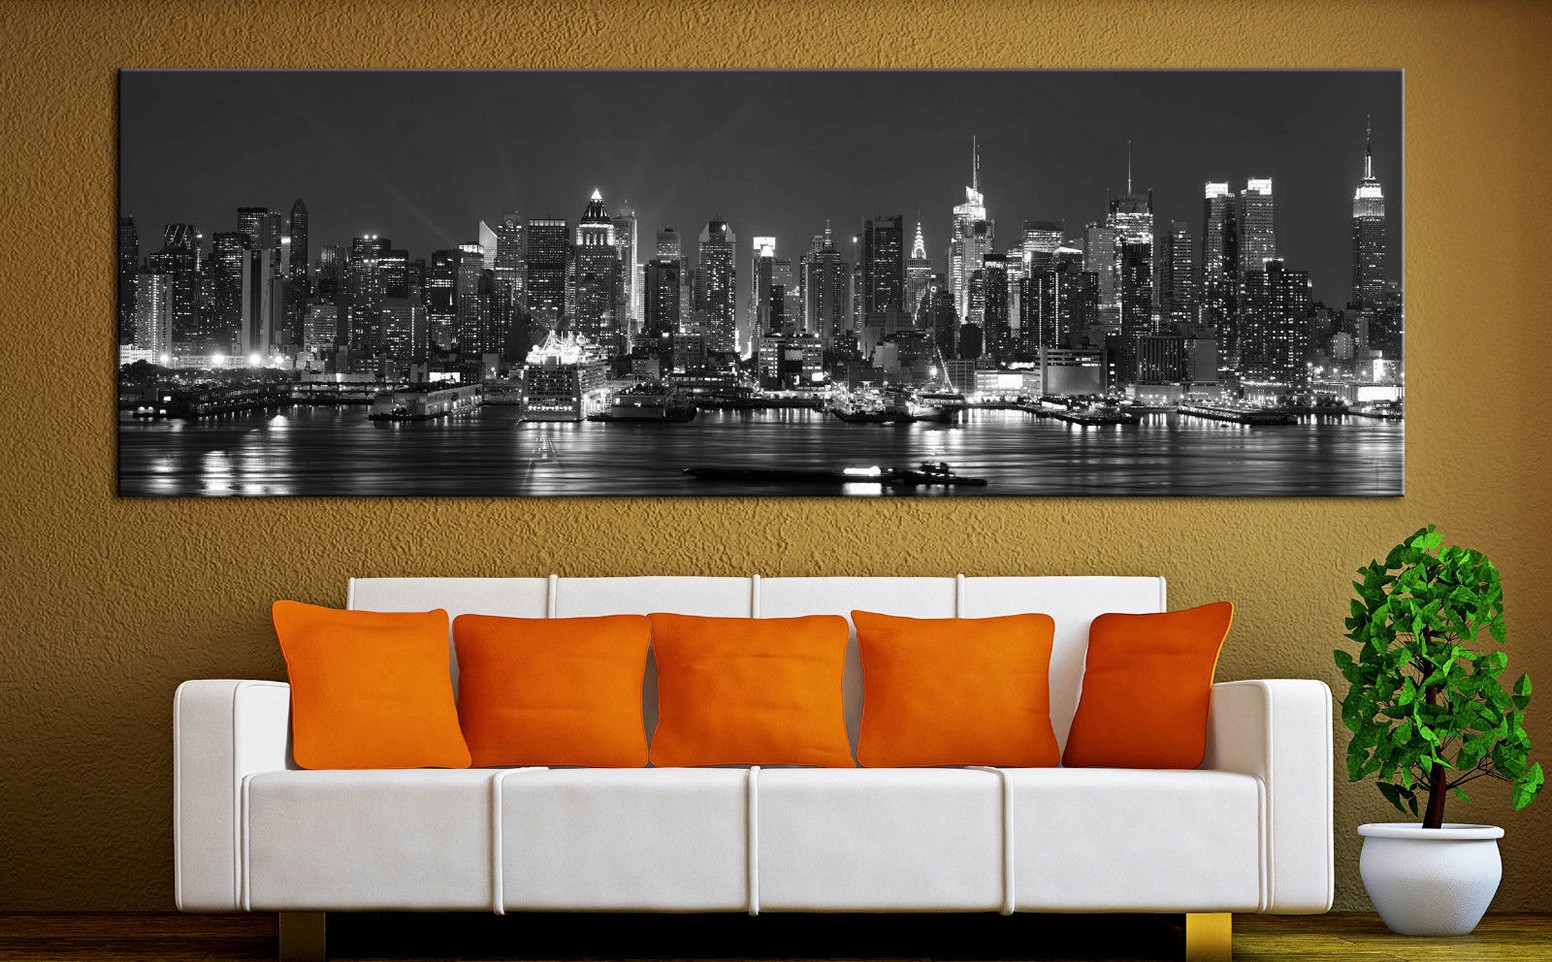 21+ Creative Picture Wall Ideas and Photos for 2017 ... on Creative Wall Ideas  id=19033